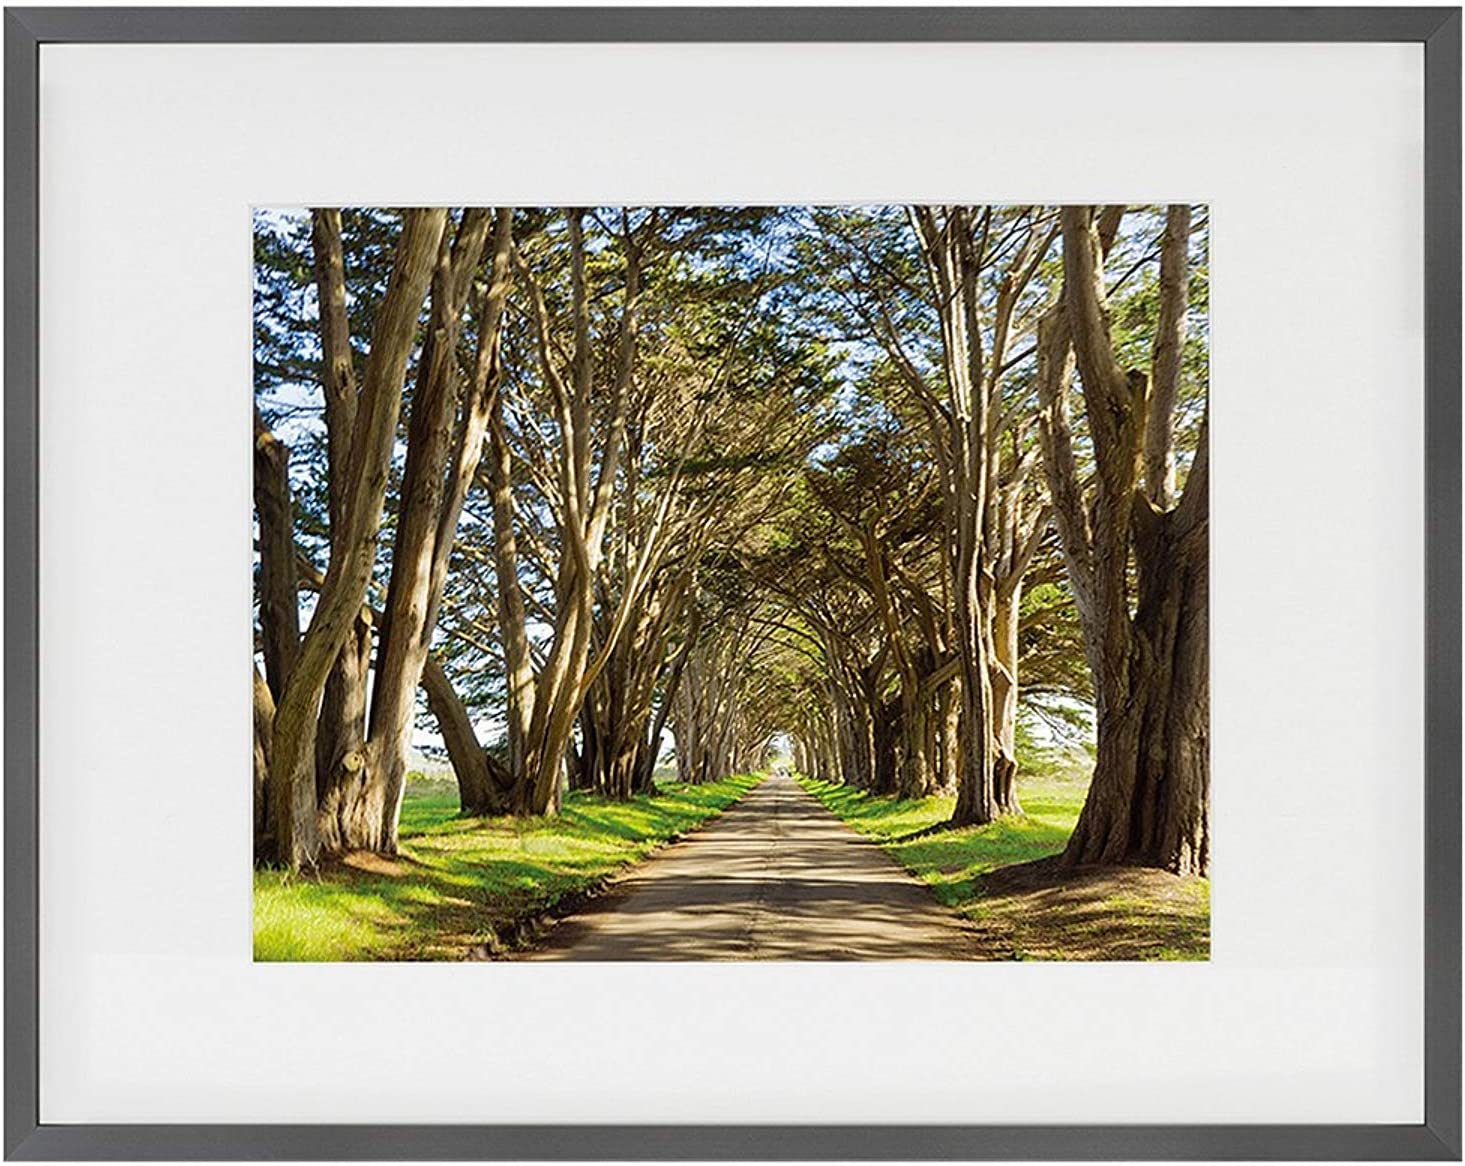 Golden State Art, Brushed Texture Aluminum Picture Frame - Ivory Mat - Wall/Table Display - Real Glass (Dark Grey, 11x14 for 8x10)